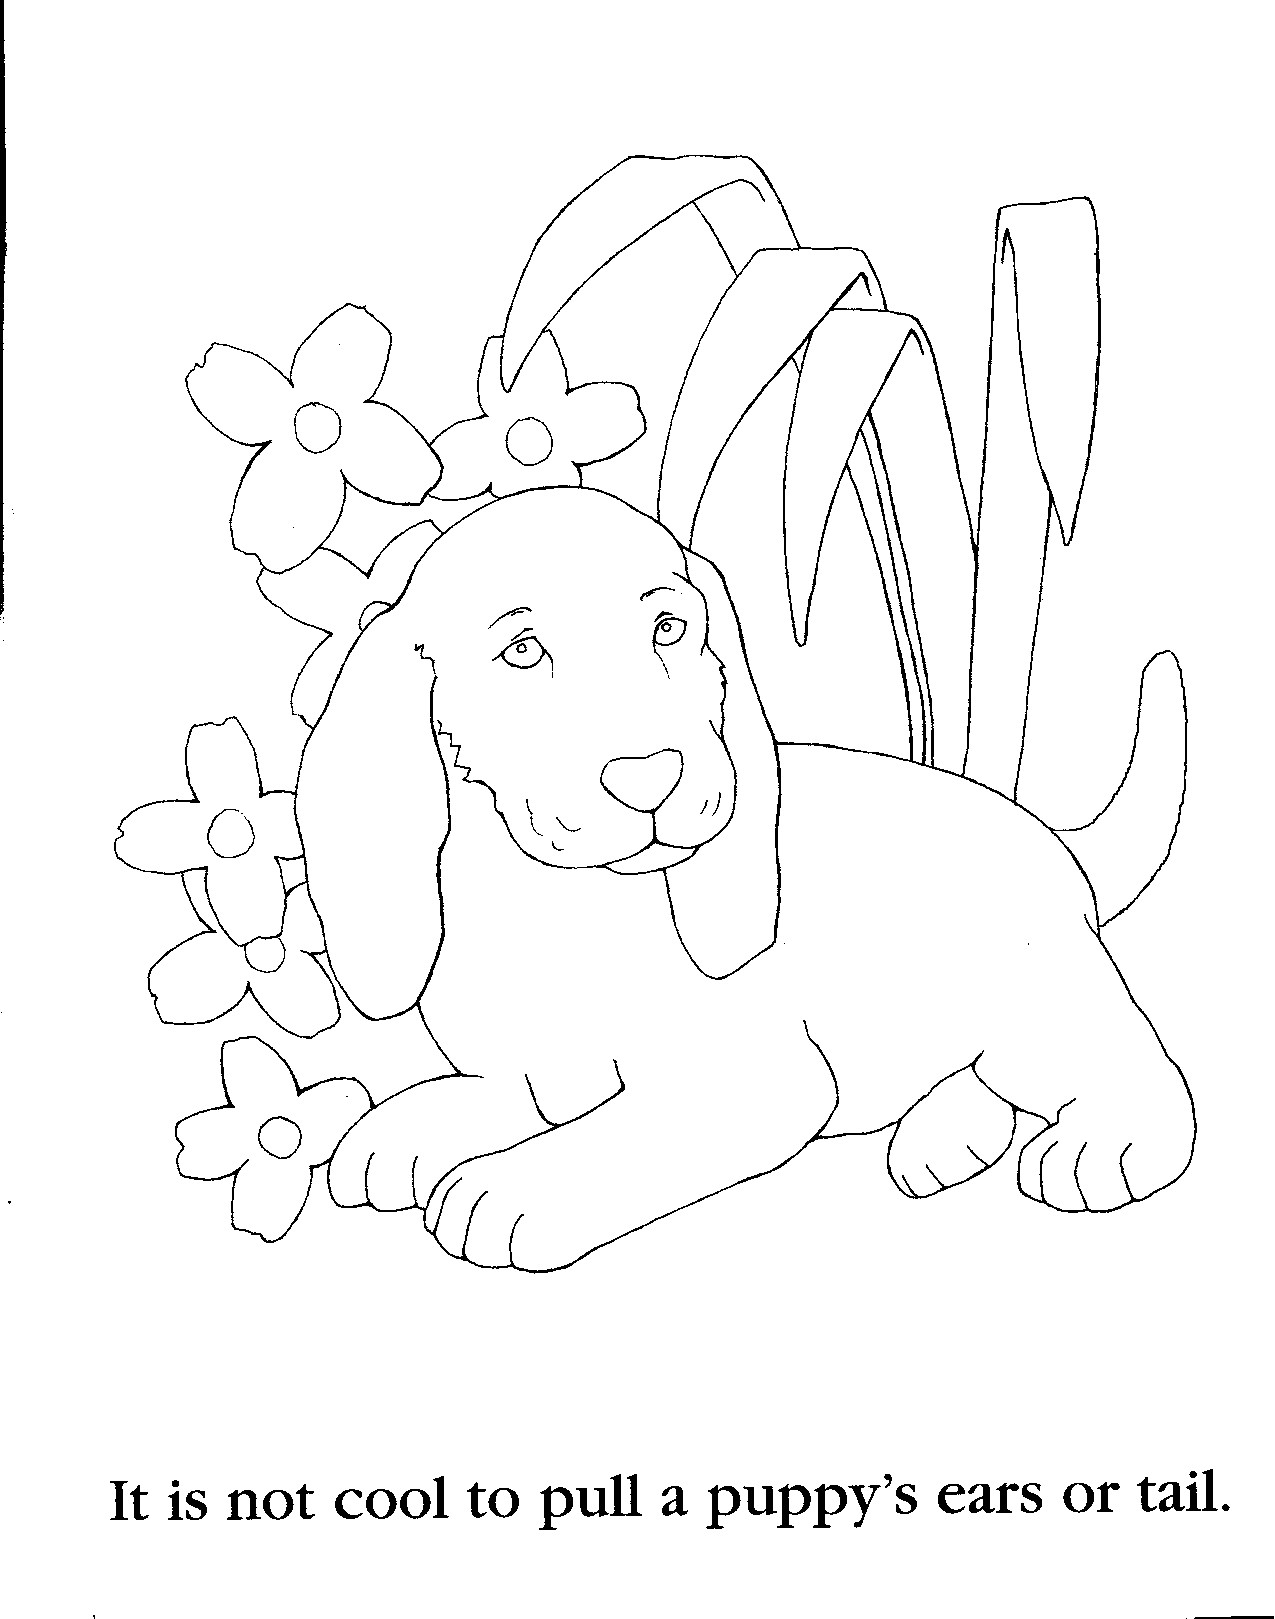 Coloring Pages For 10 Year Olds At Getcolorings